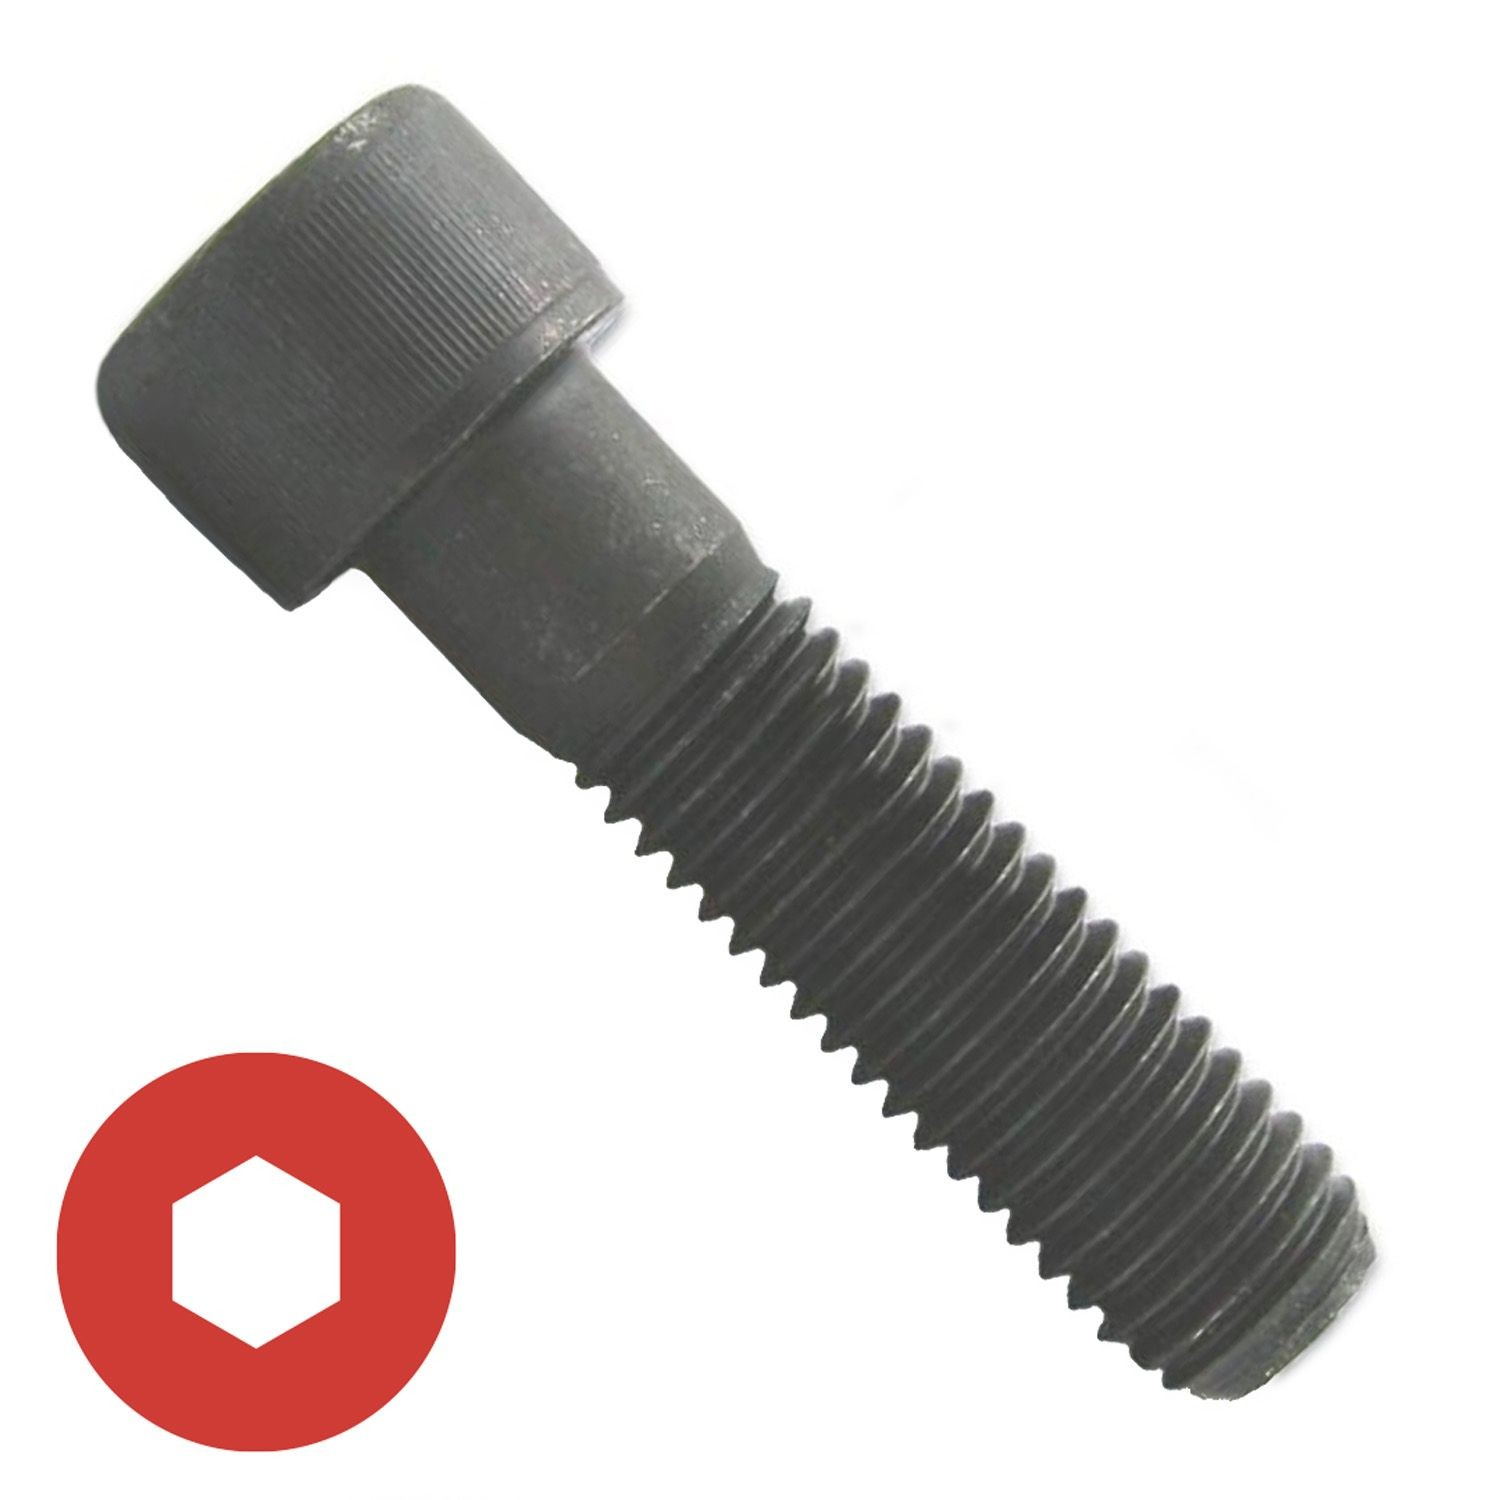 "#10-32 x 3/16"" Socket Head Cap Screw"